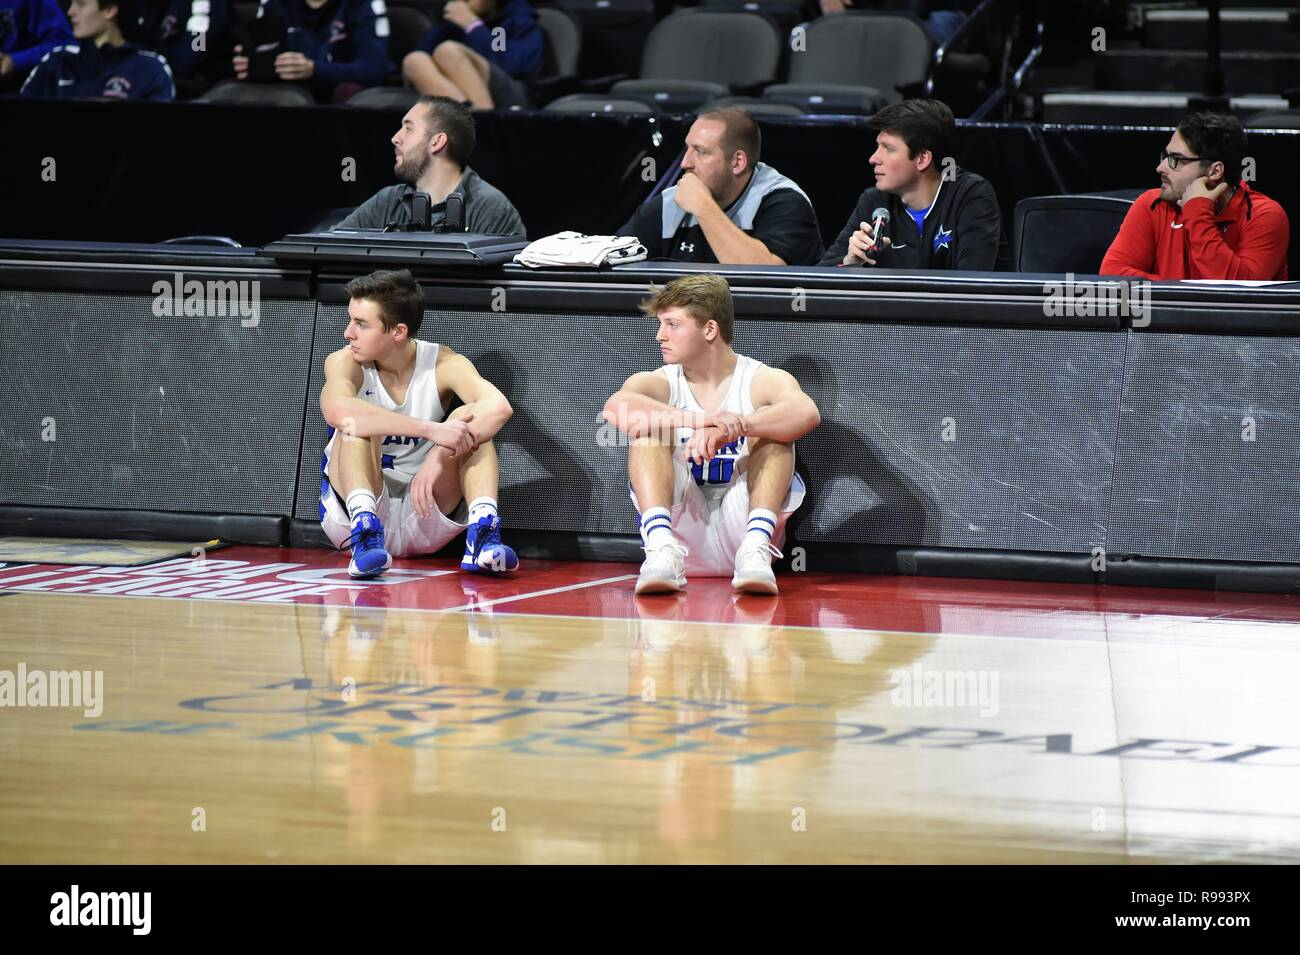 After checking in a the scorer's table, players sit while waiting to enter the game during the next pause in play. - Stock Image